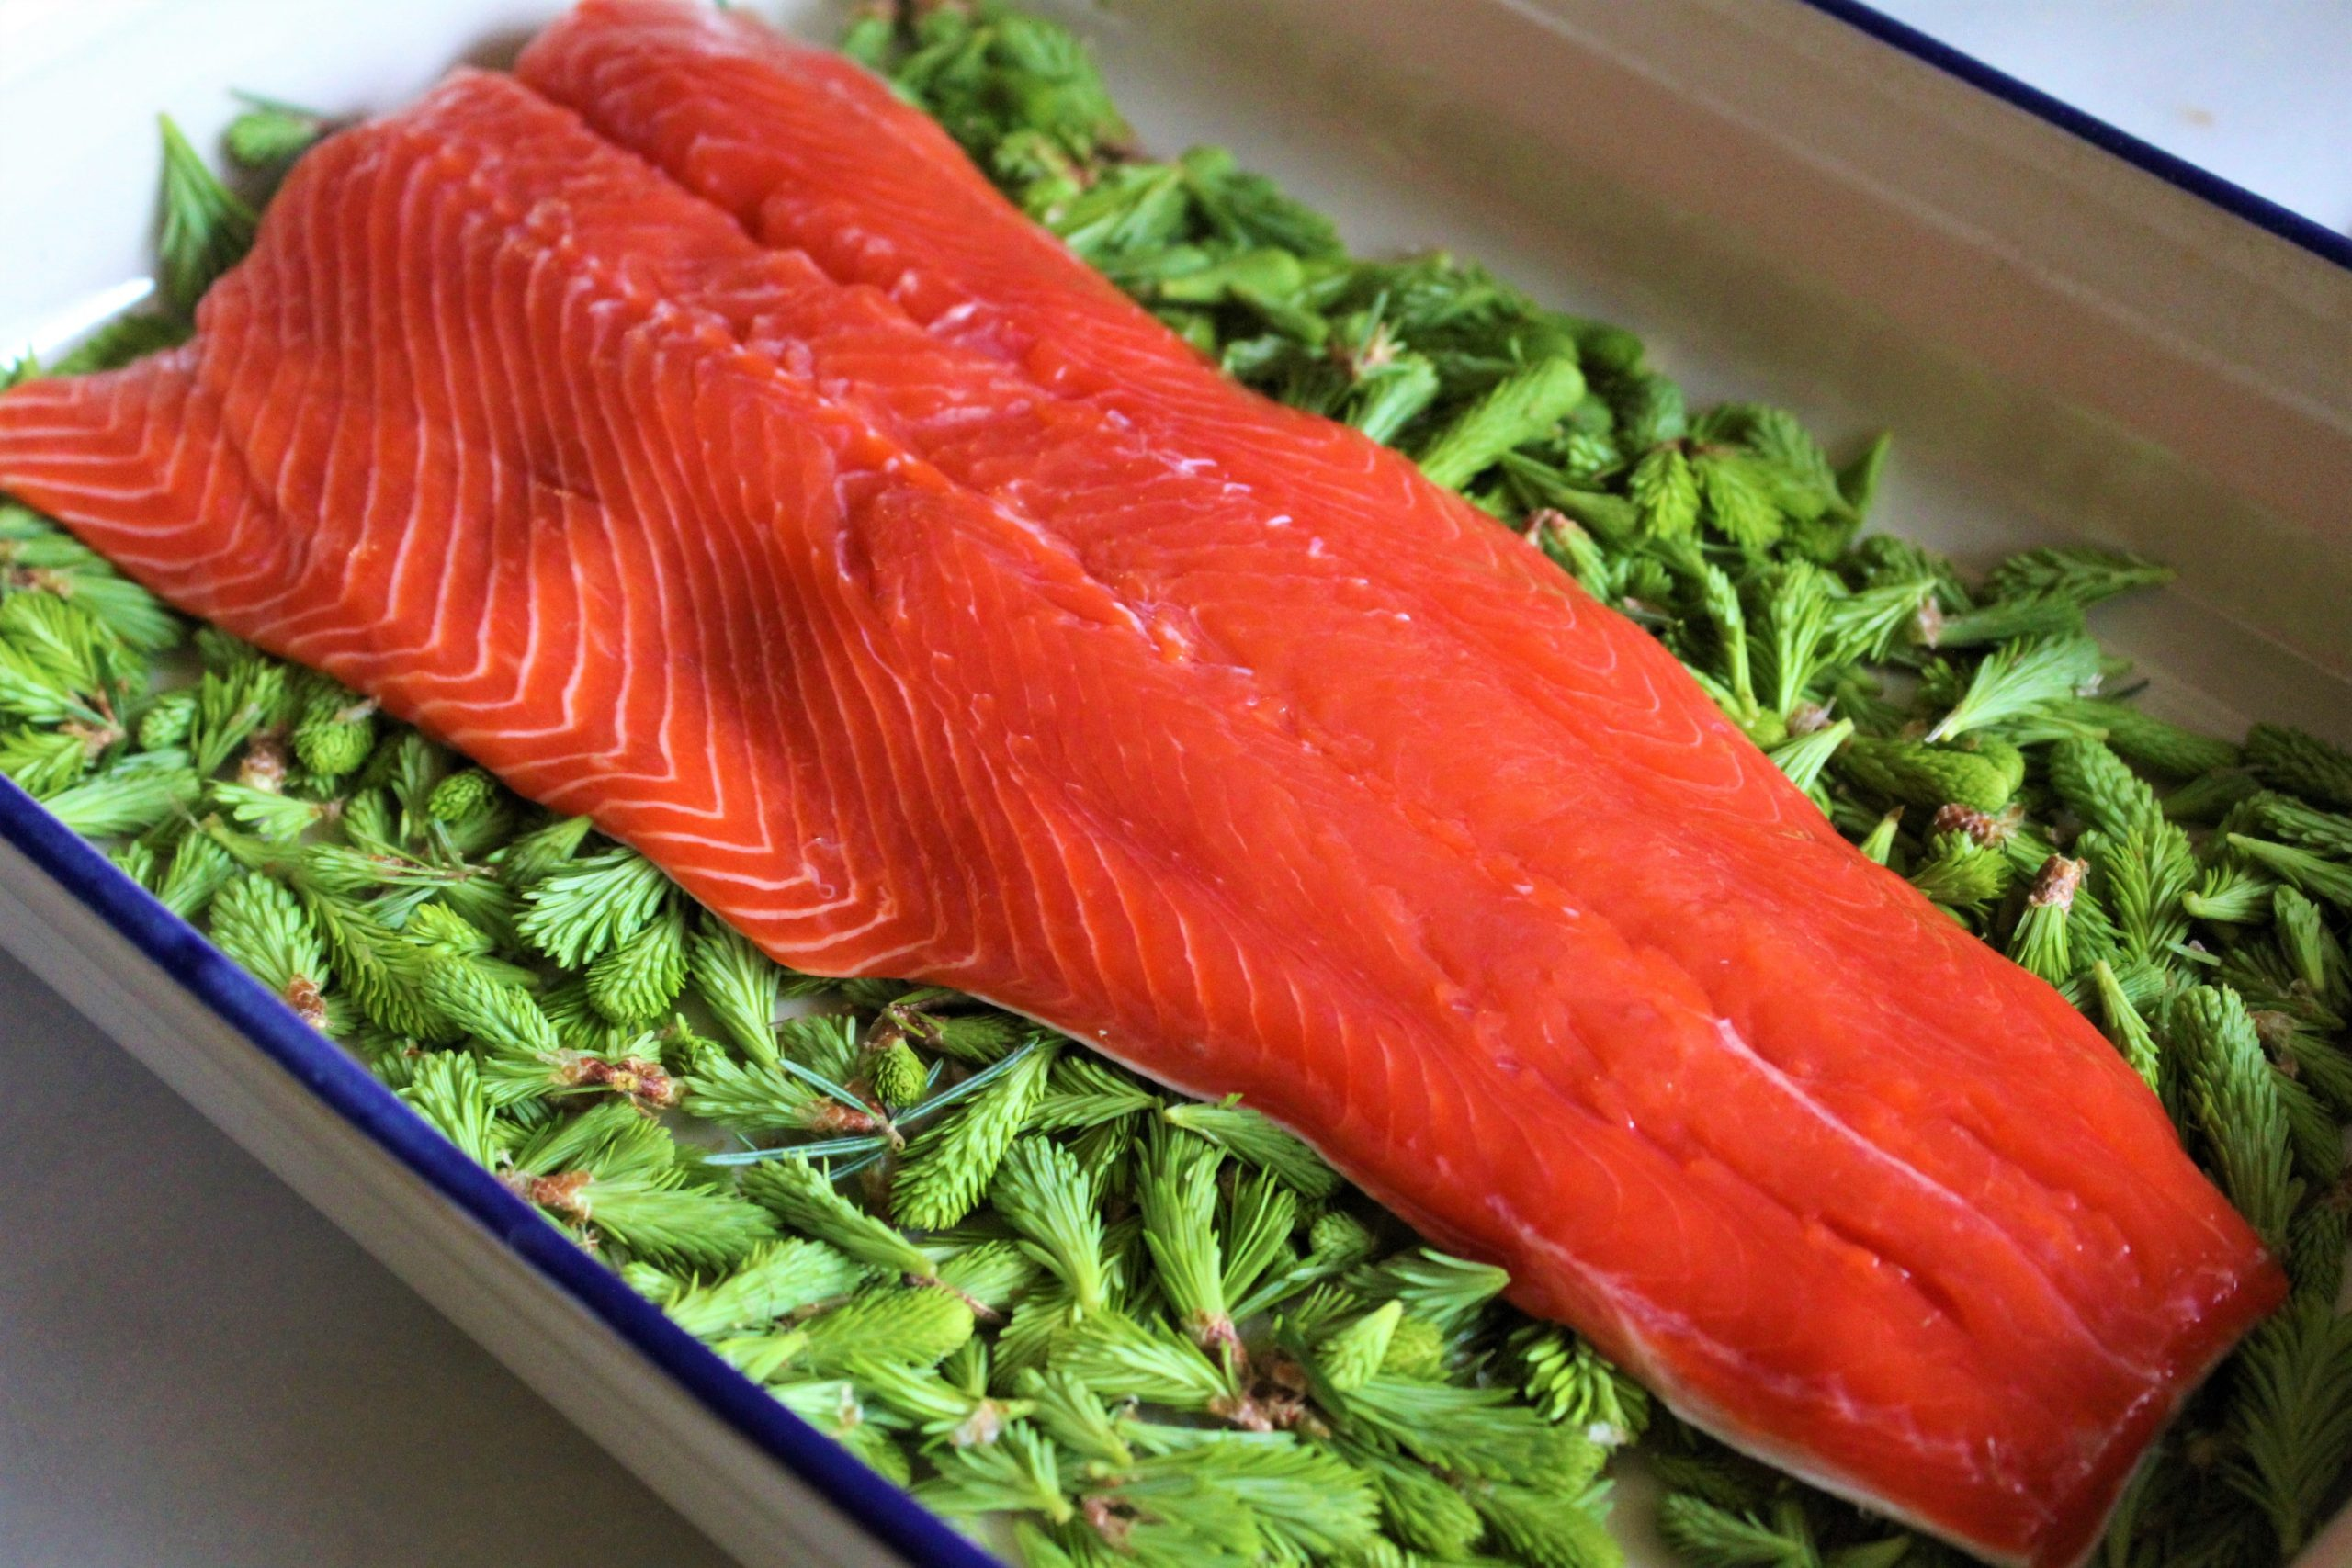 salmon ready for salt curing to make homemade gravlax